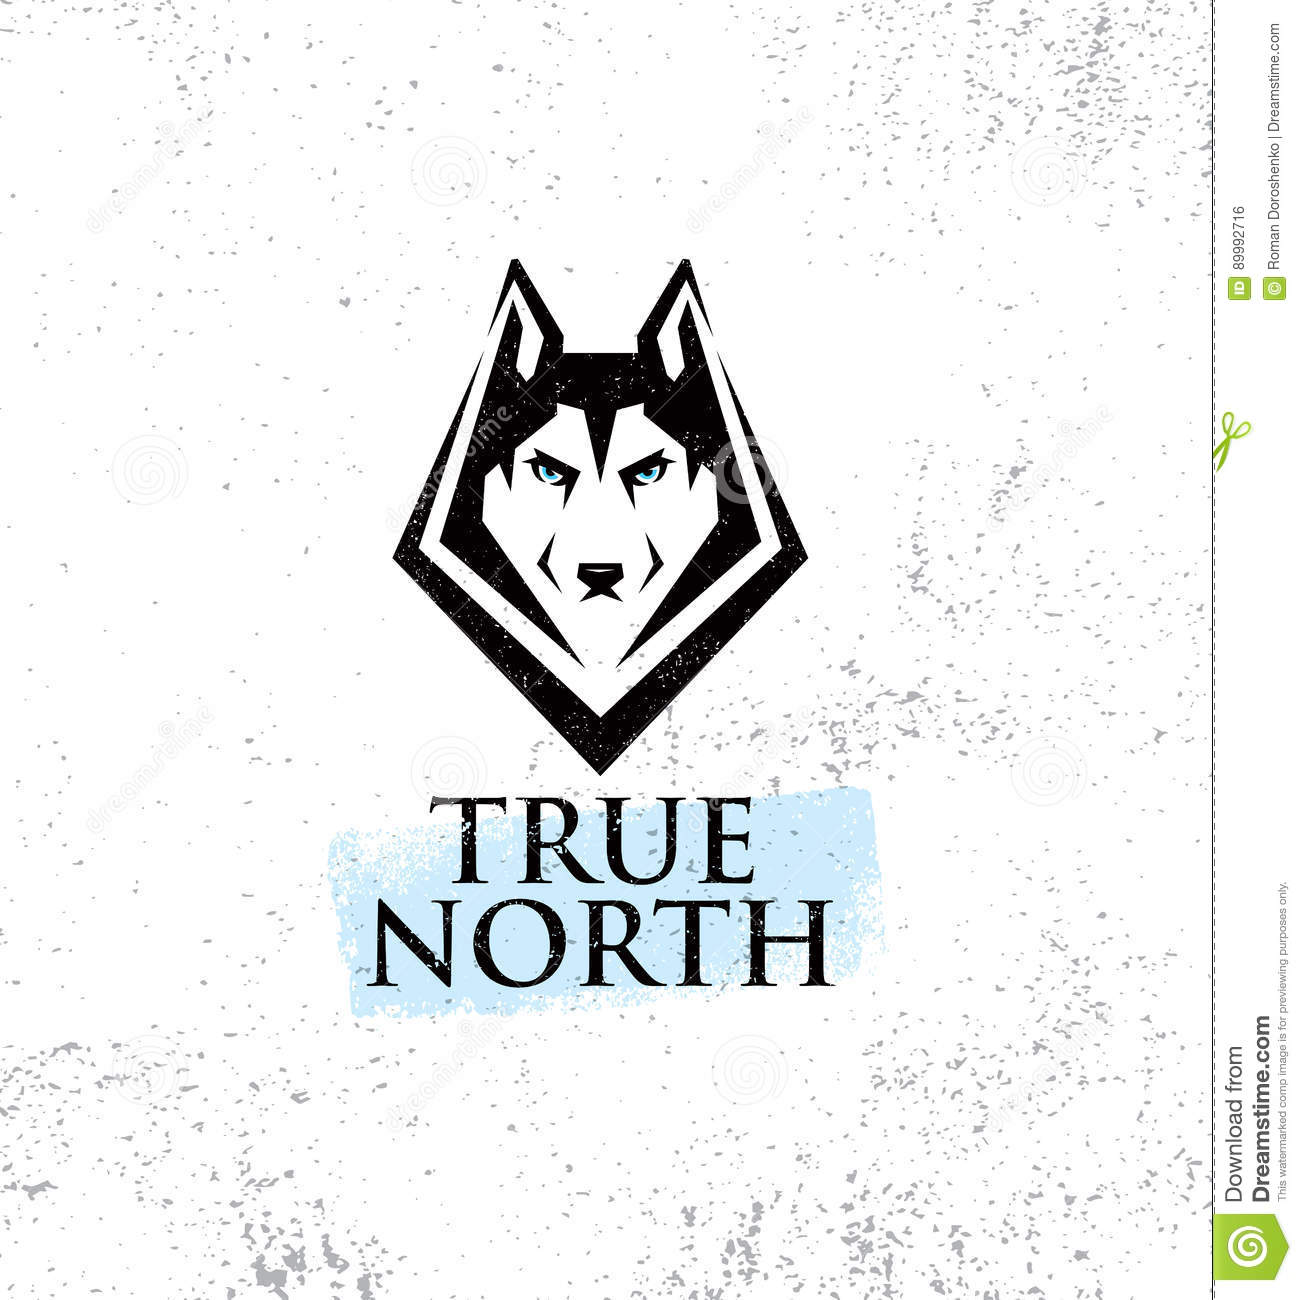 True North Active Lifestyle Outdoor Club. Husky Dog Face Illustration Strong Sign Concept On Rough Background.